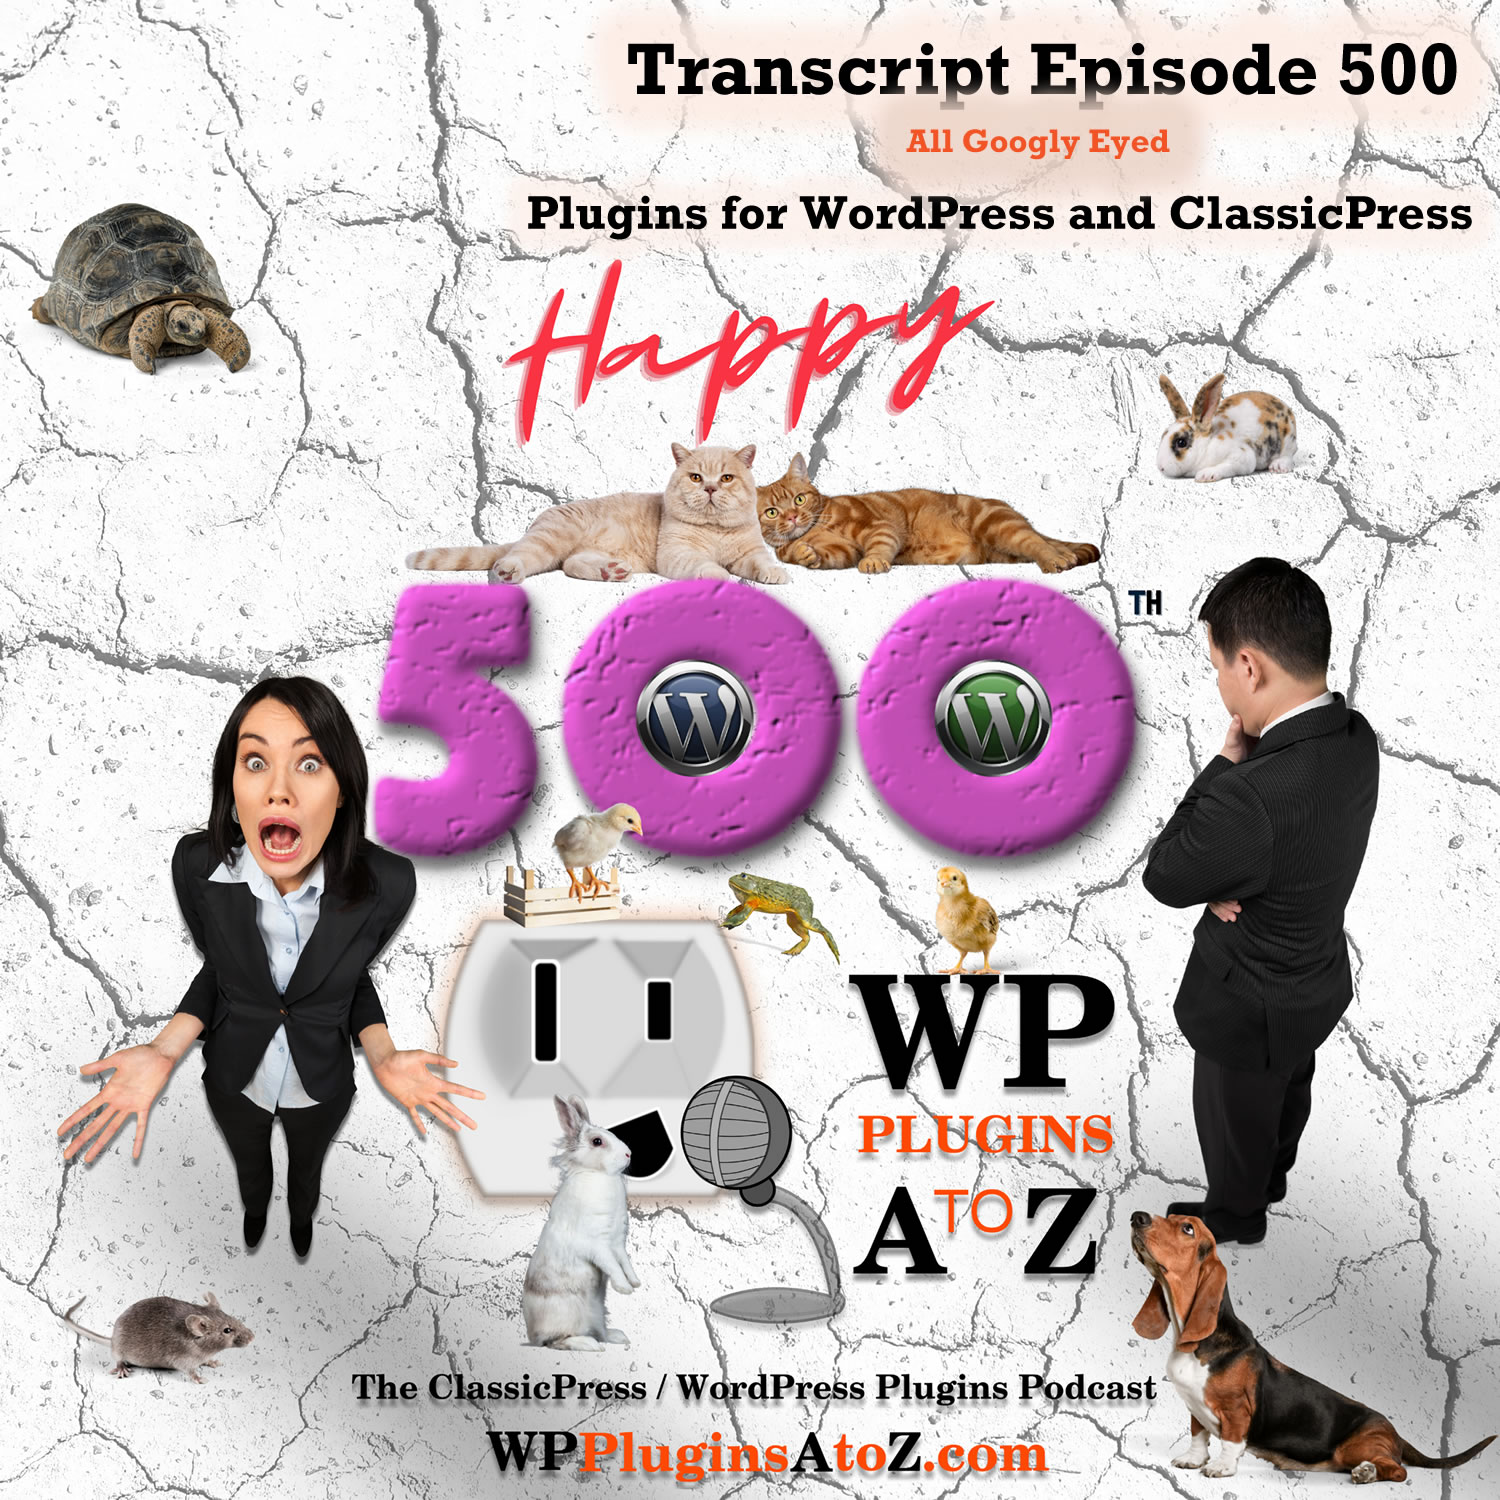 All Googly Eyed It's Episode 500 - We have plugins for Bitcoin, Animated Menu, Getting Sticky, Media Organization, Crypto Conversion, Multi Currency ....., and ClassicPress Options. It's all coming up on WordPress Plugins A-Z!